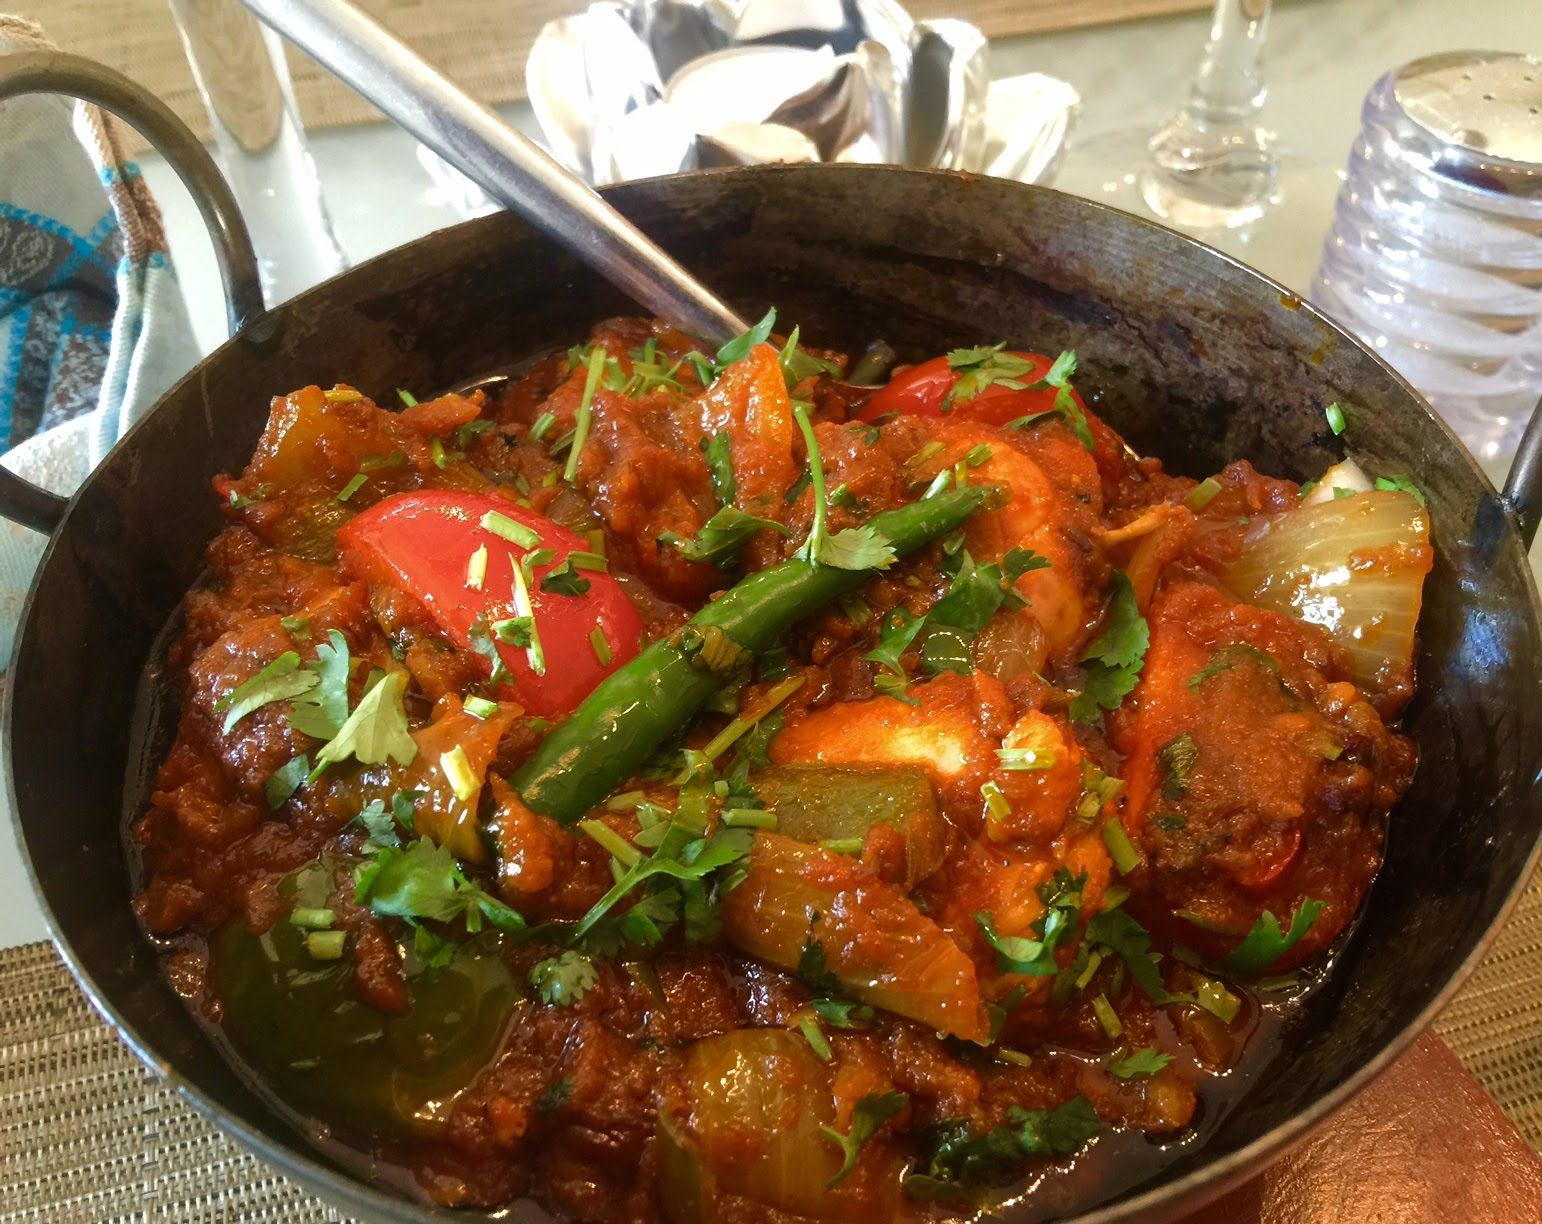 This jalfrezi curry is an intense flavoursome addition to